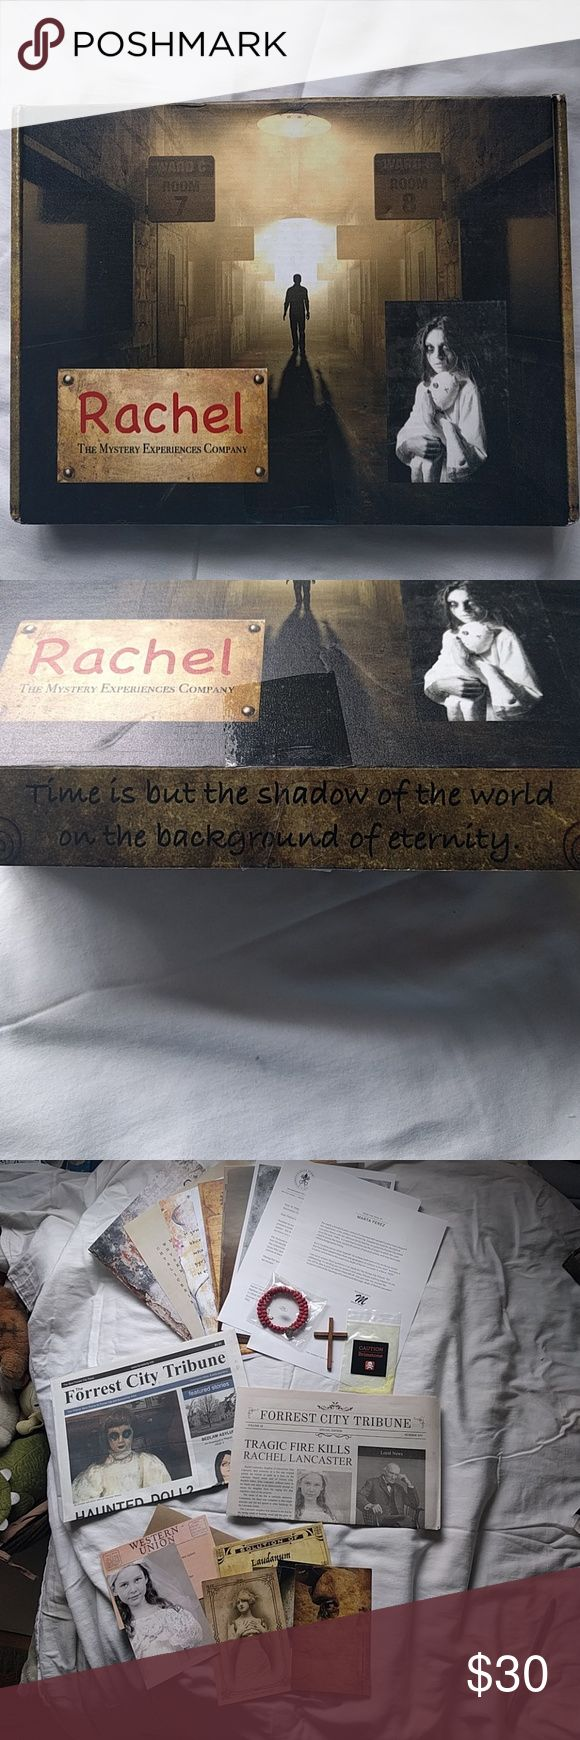 Rachel The Mystery Experience Company Game I opened the box and looked at it. Never used. All pieces are there. Got as a mysterious Birthday gift from a friend.   It is a 'Who Done It' story/game. There are several and this one is about a girl named 'Rachel' and a doll named 'Caroline'. Using all of the clues, you are the detective that must find out what happened to Rachel and is the doll, Caroline, really to blame?  If you like the Escape Rooms games, this is like those. Other